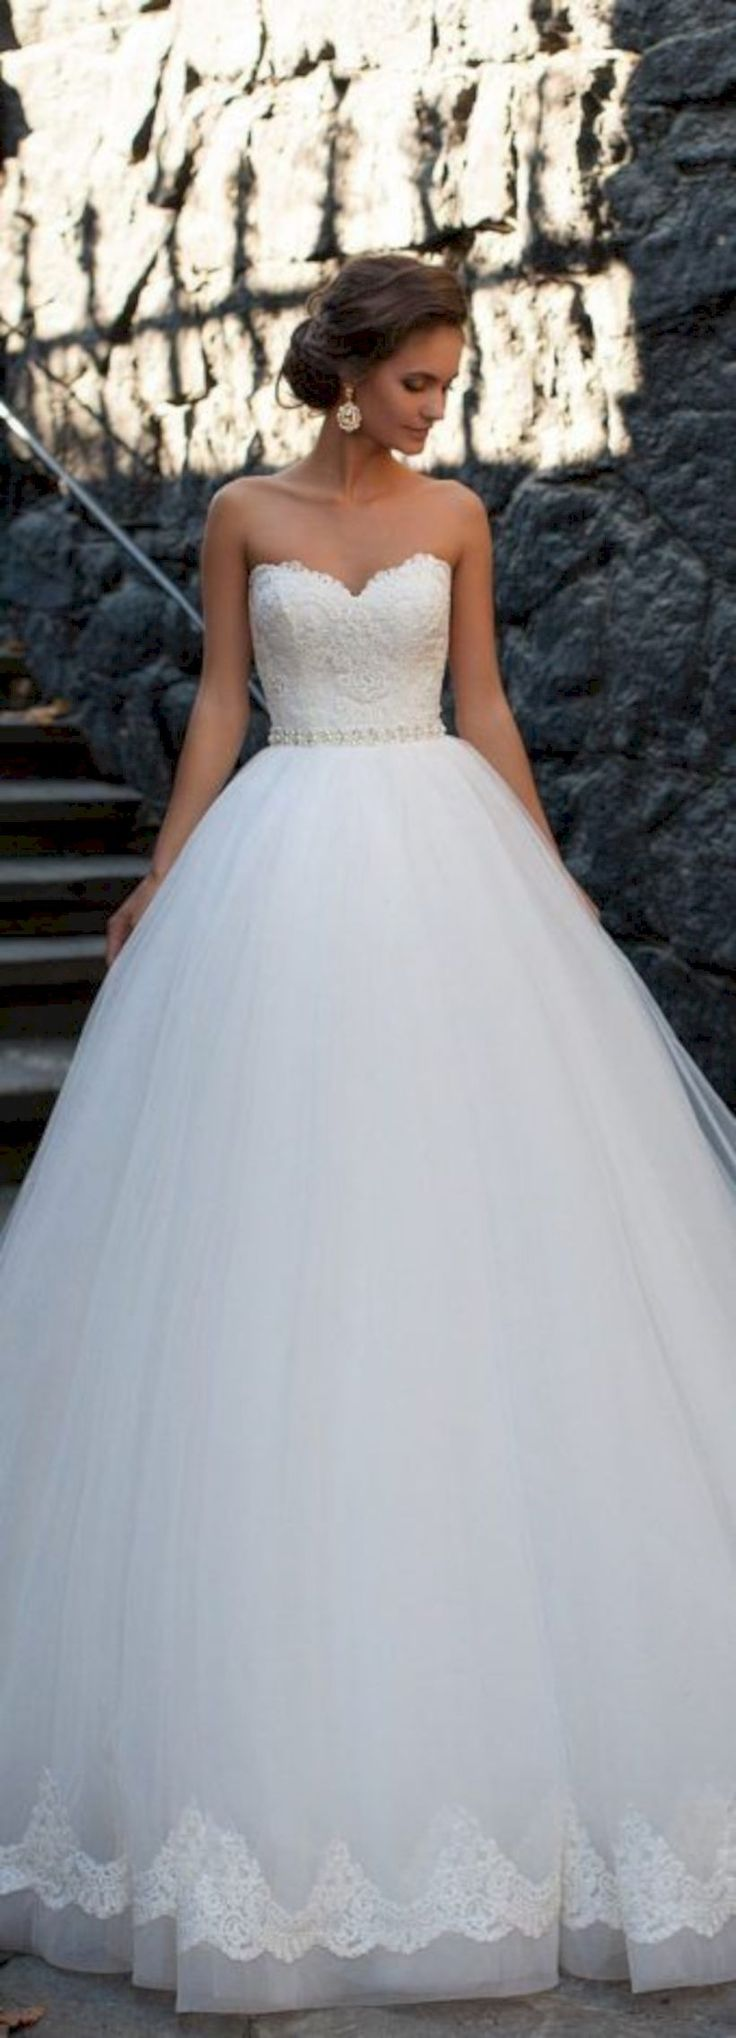 12 best Wedding Dresses images on Pinterest | Gown wedding, Wedding ...